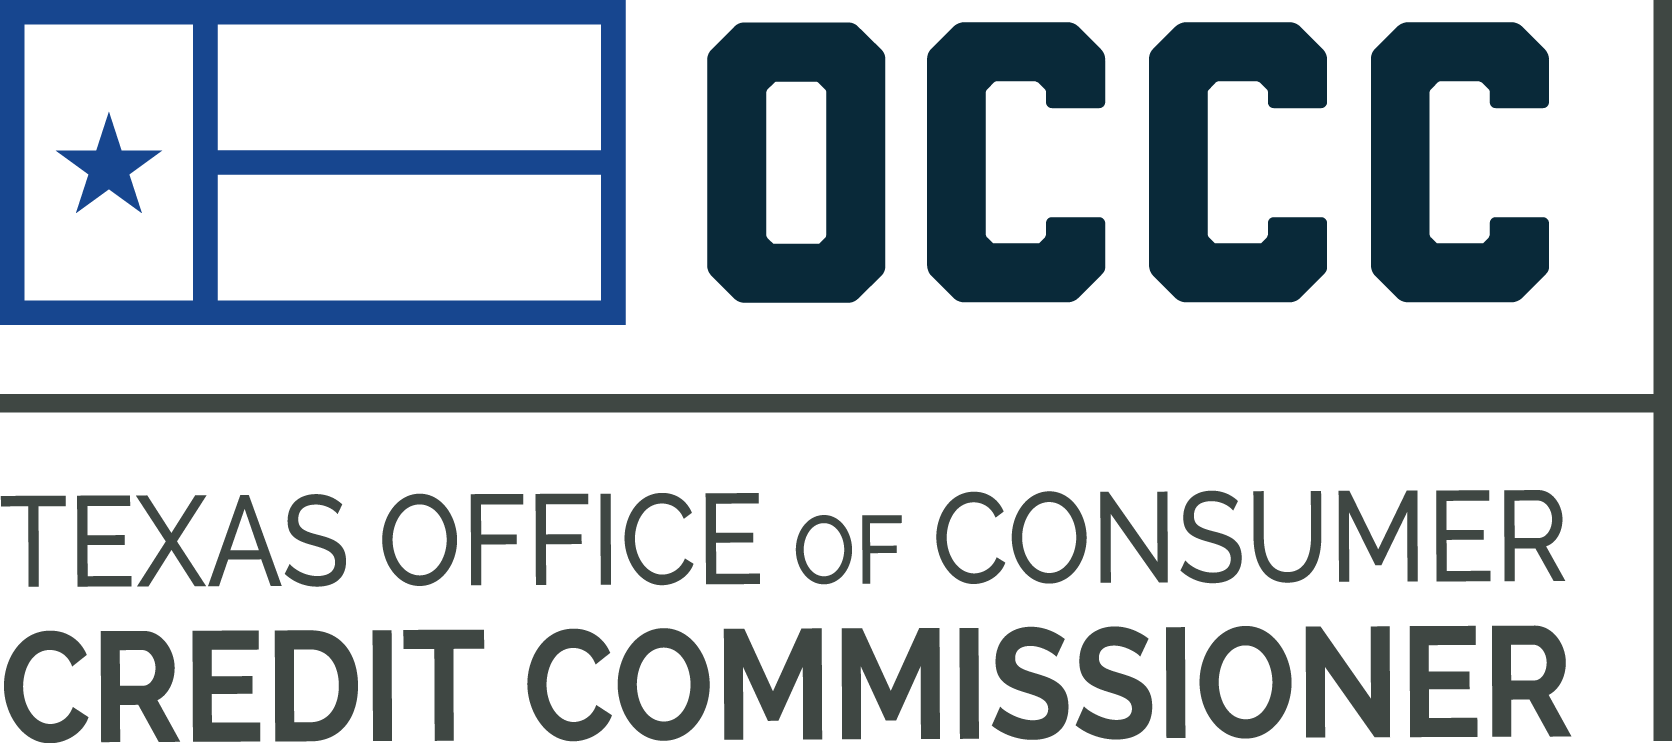 TEXAS OFFICE of CONSUMER CREDIT COMMISSIONER